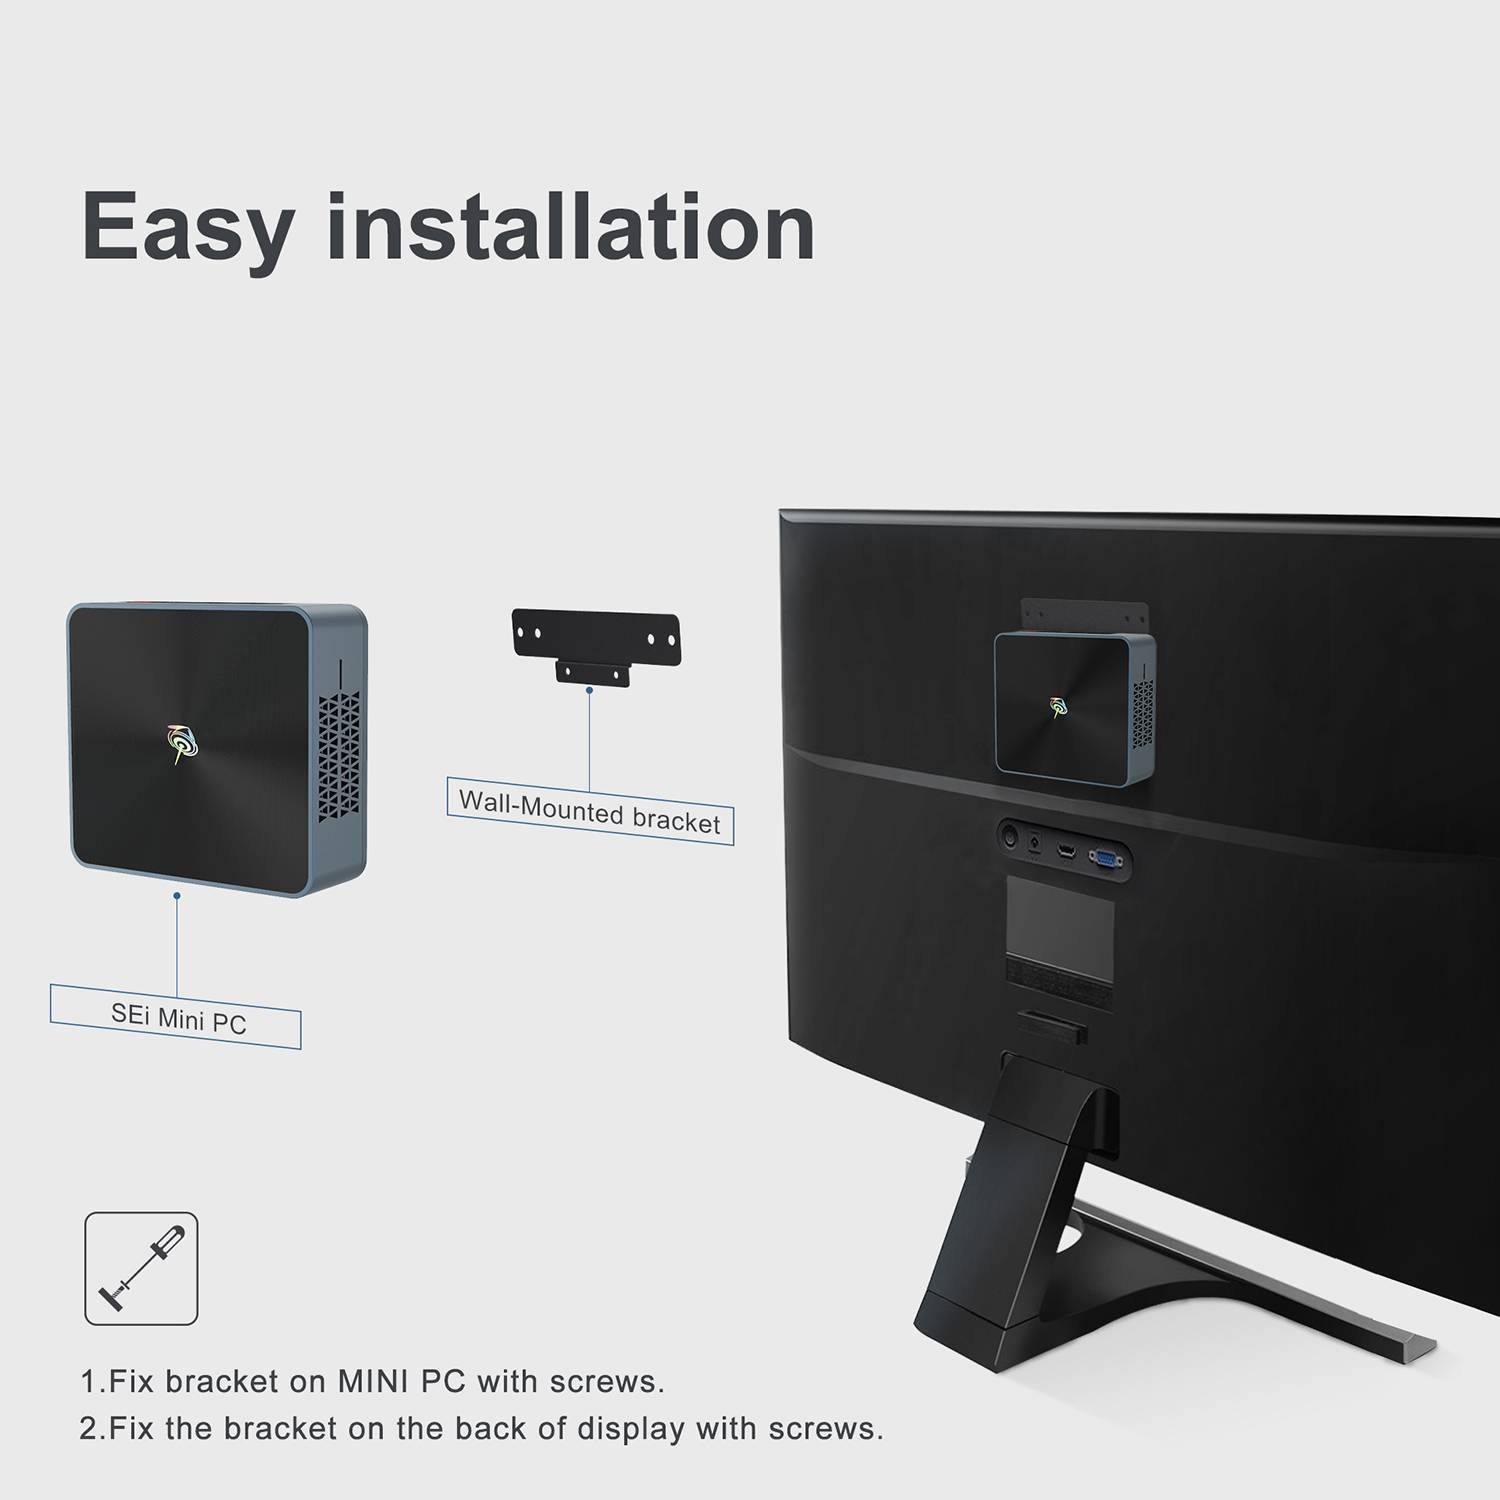 Beelink SEi 10 i3 Mini PC showing back of tv support